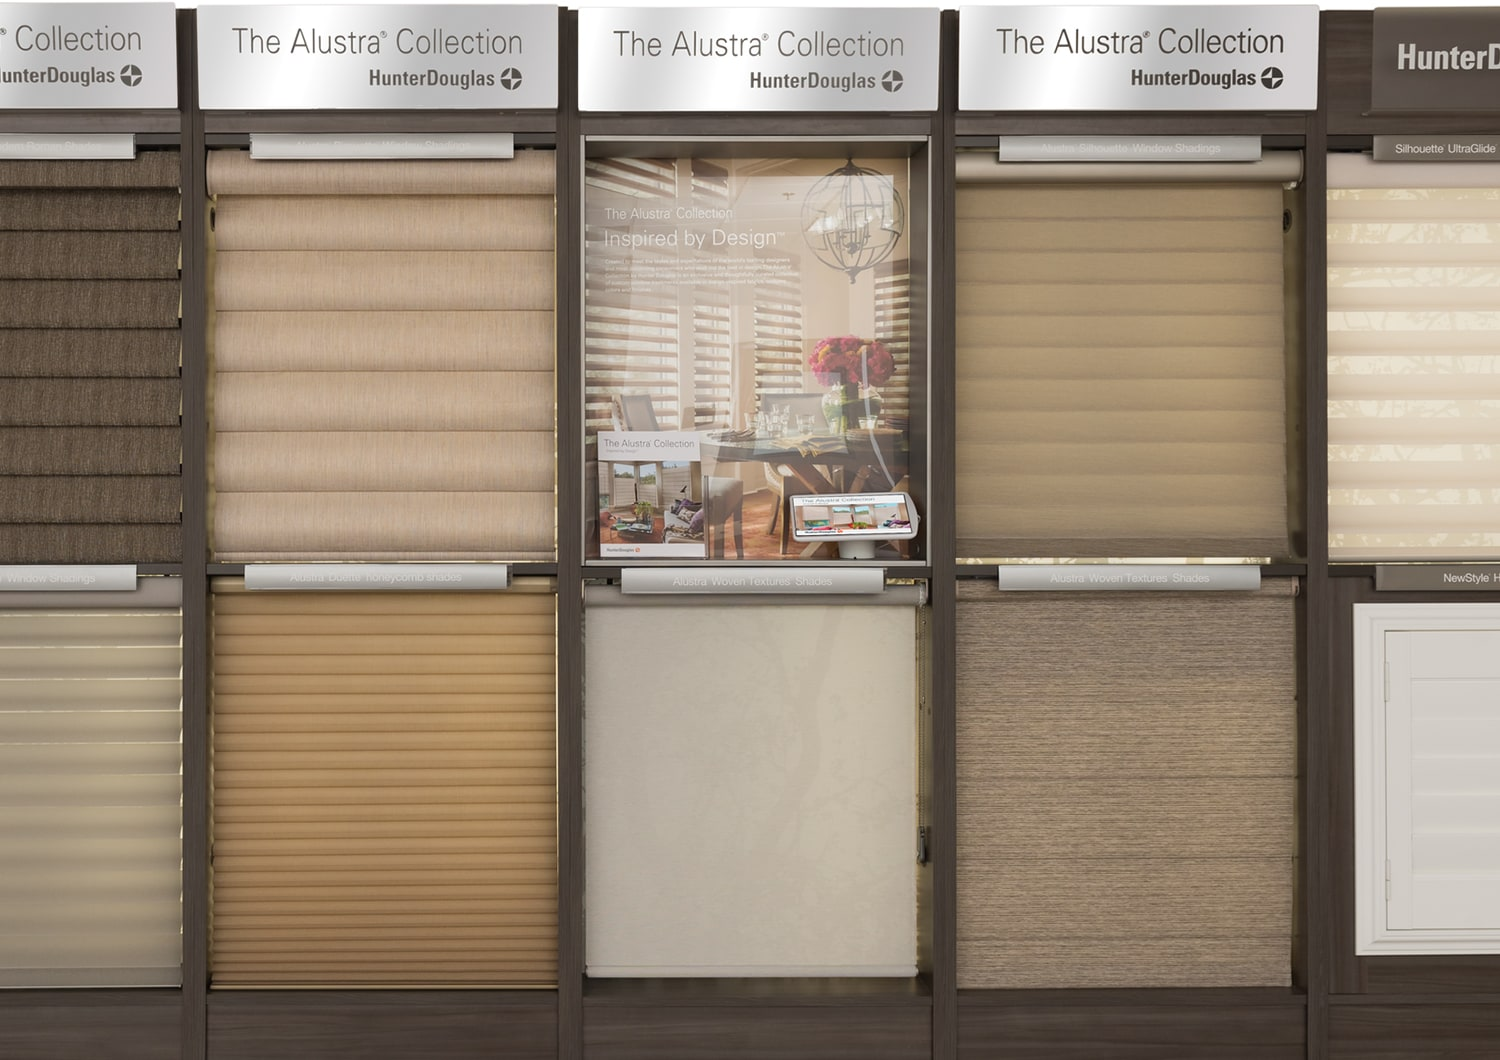 Hunter Douglas kiosk